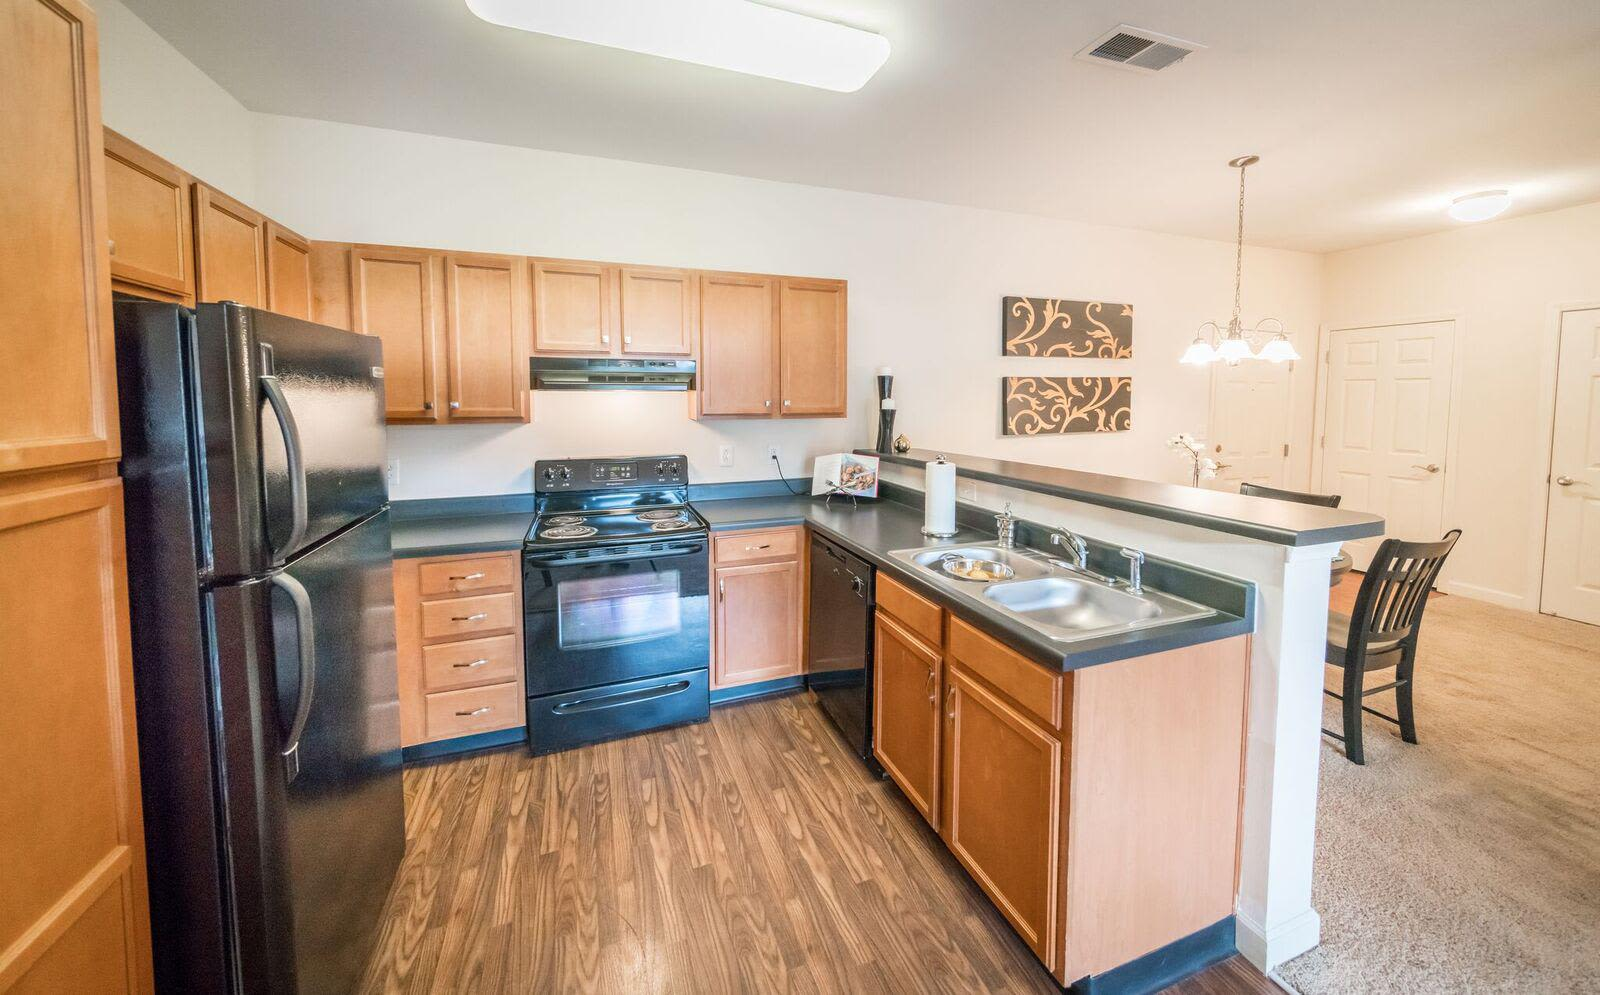 Beautiful kitchen at apartments in Macon, Georgia